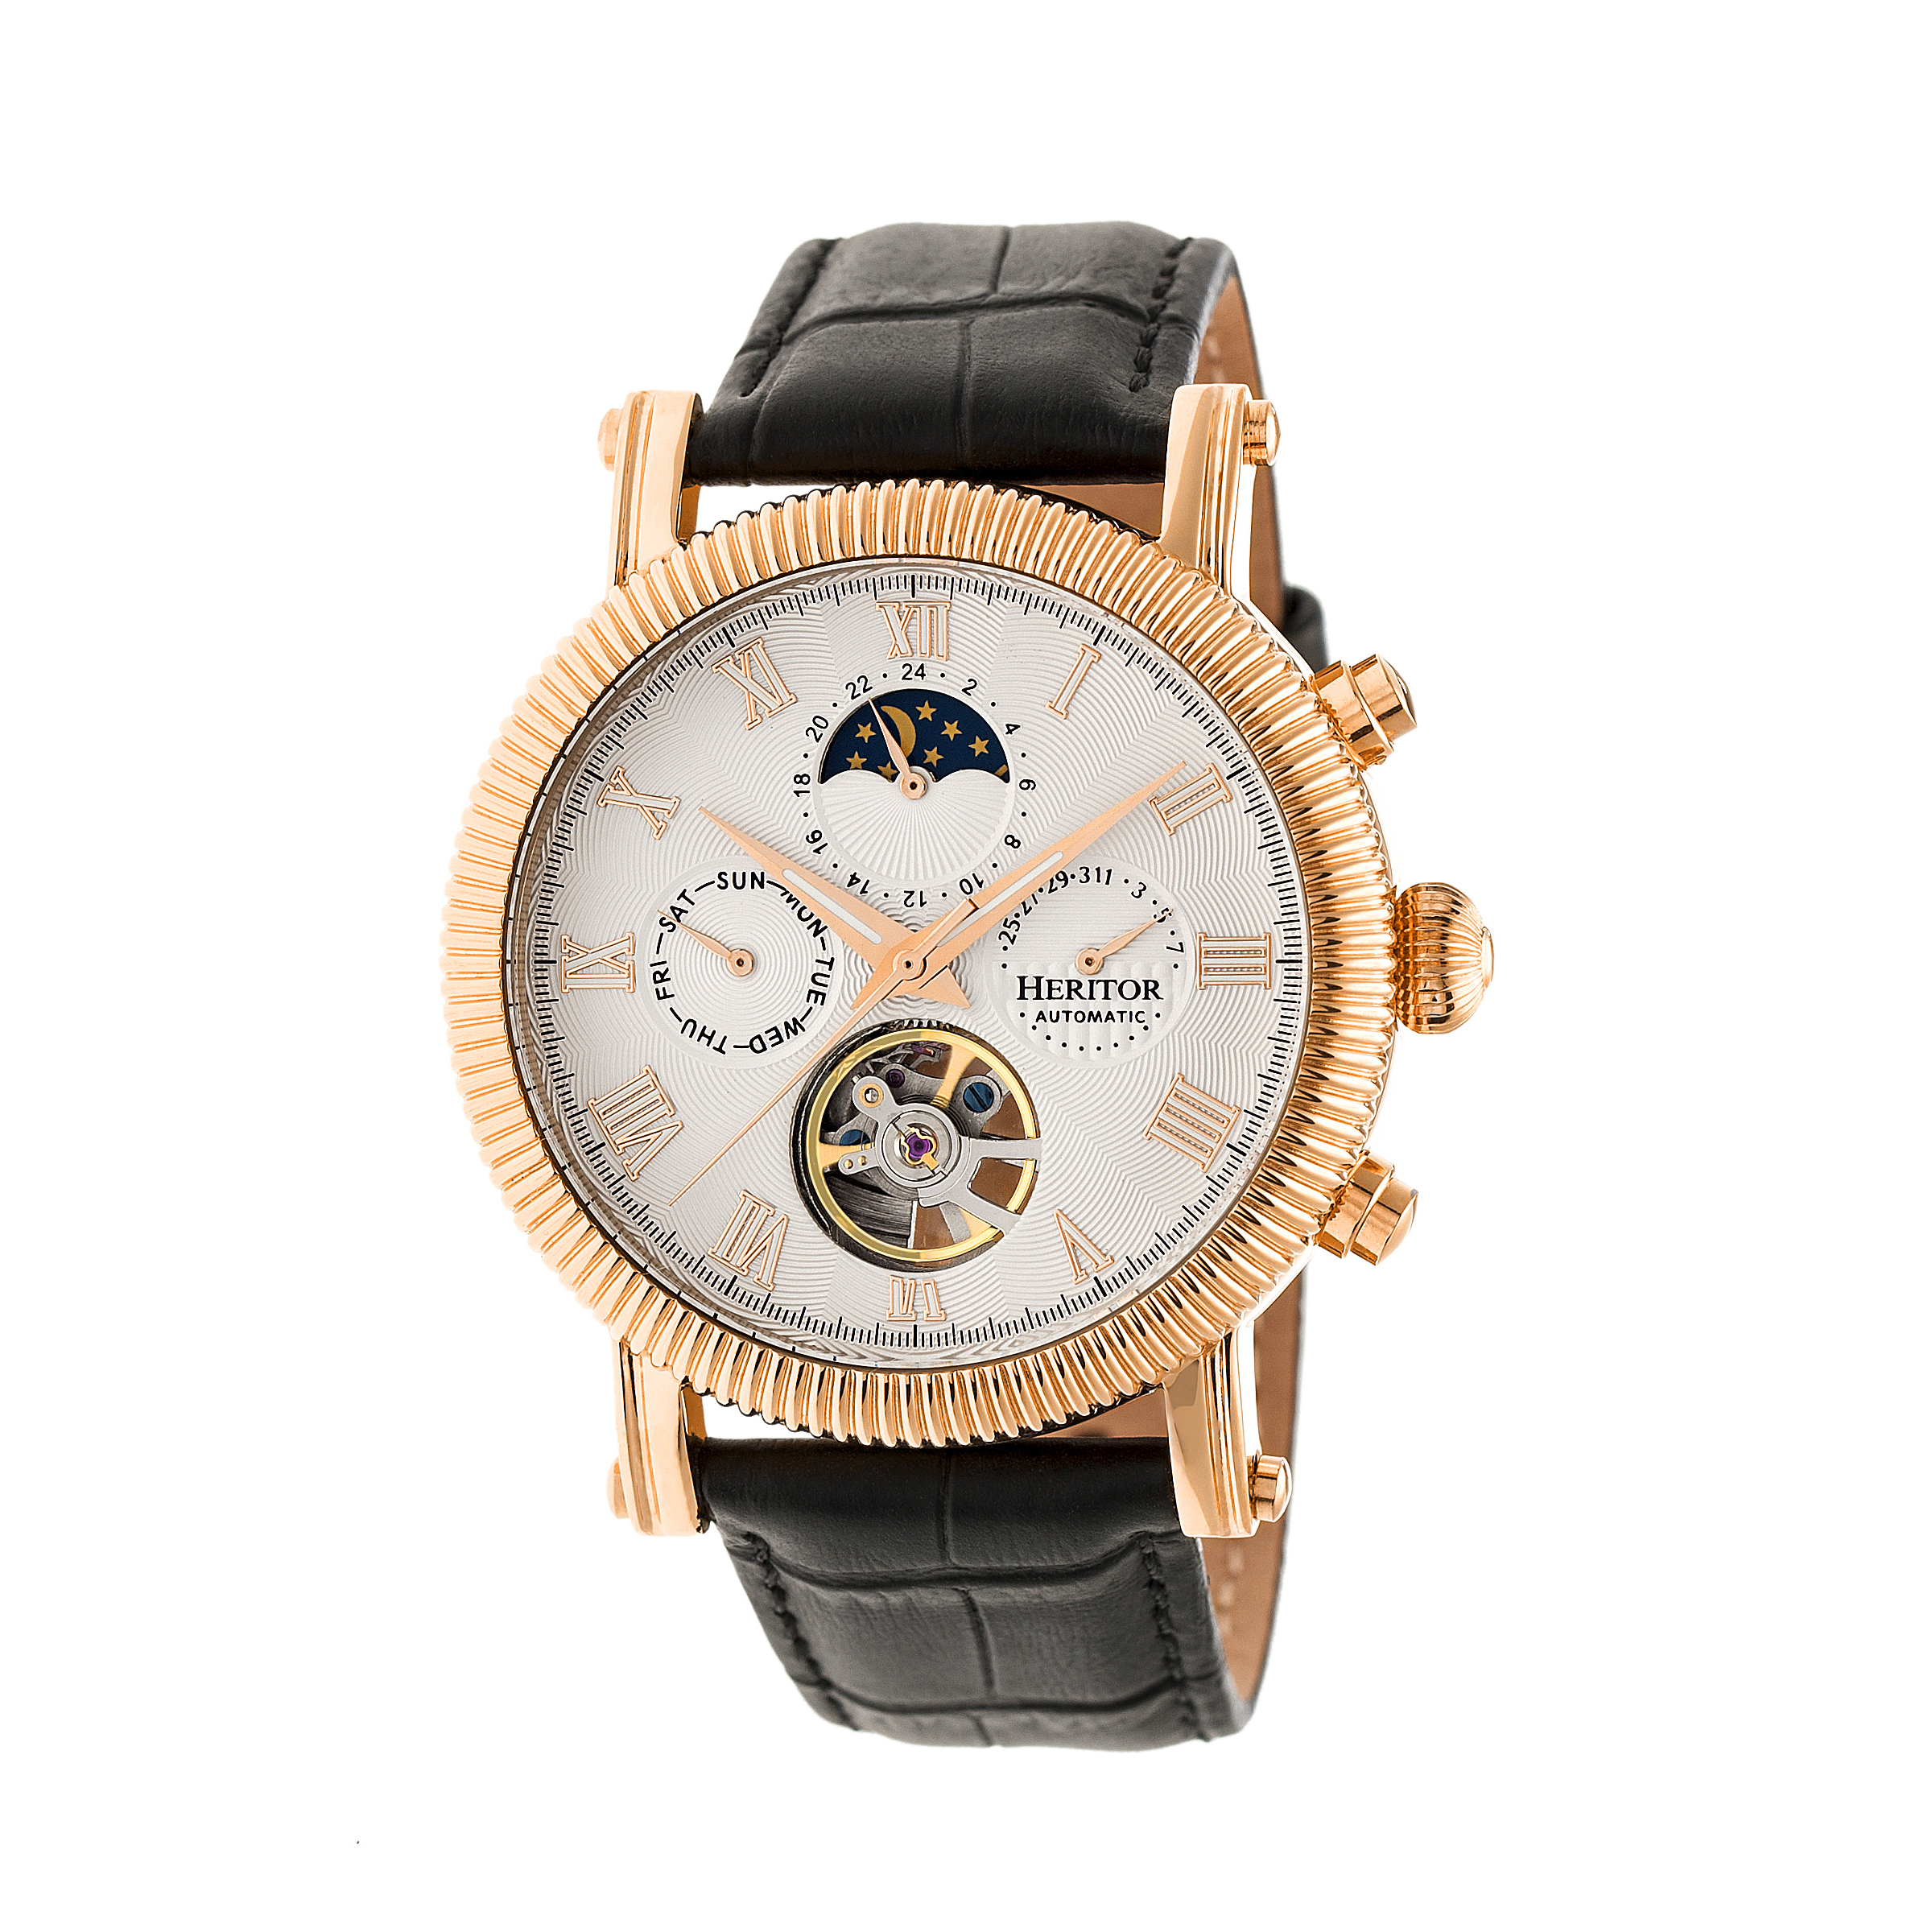 Product details for Heritor Automatic Winston Semi-Skeleton